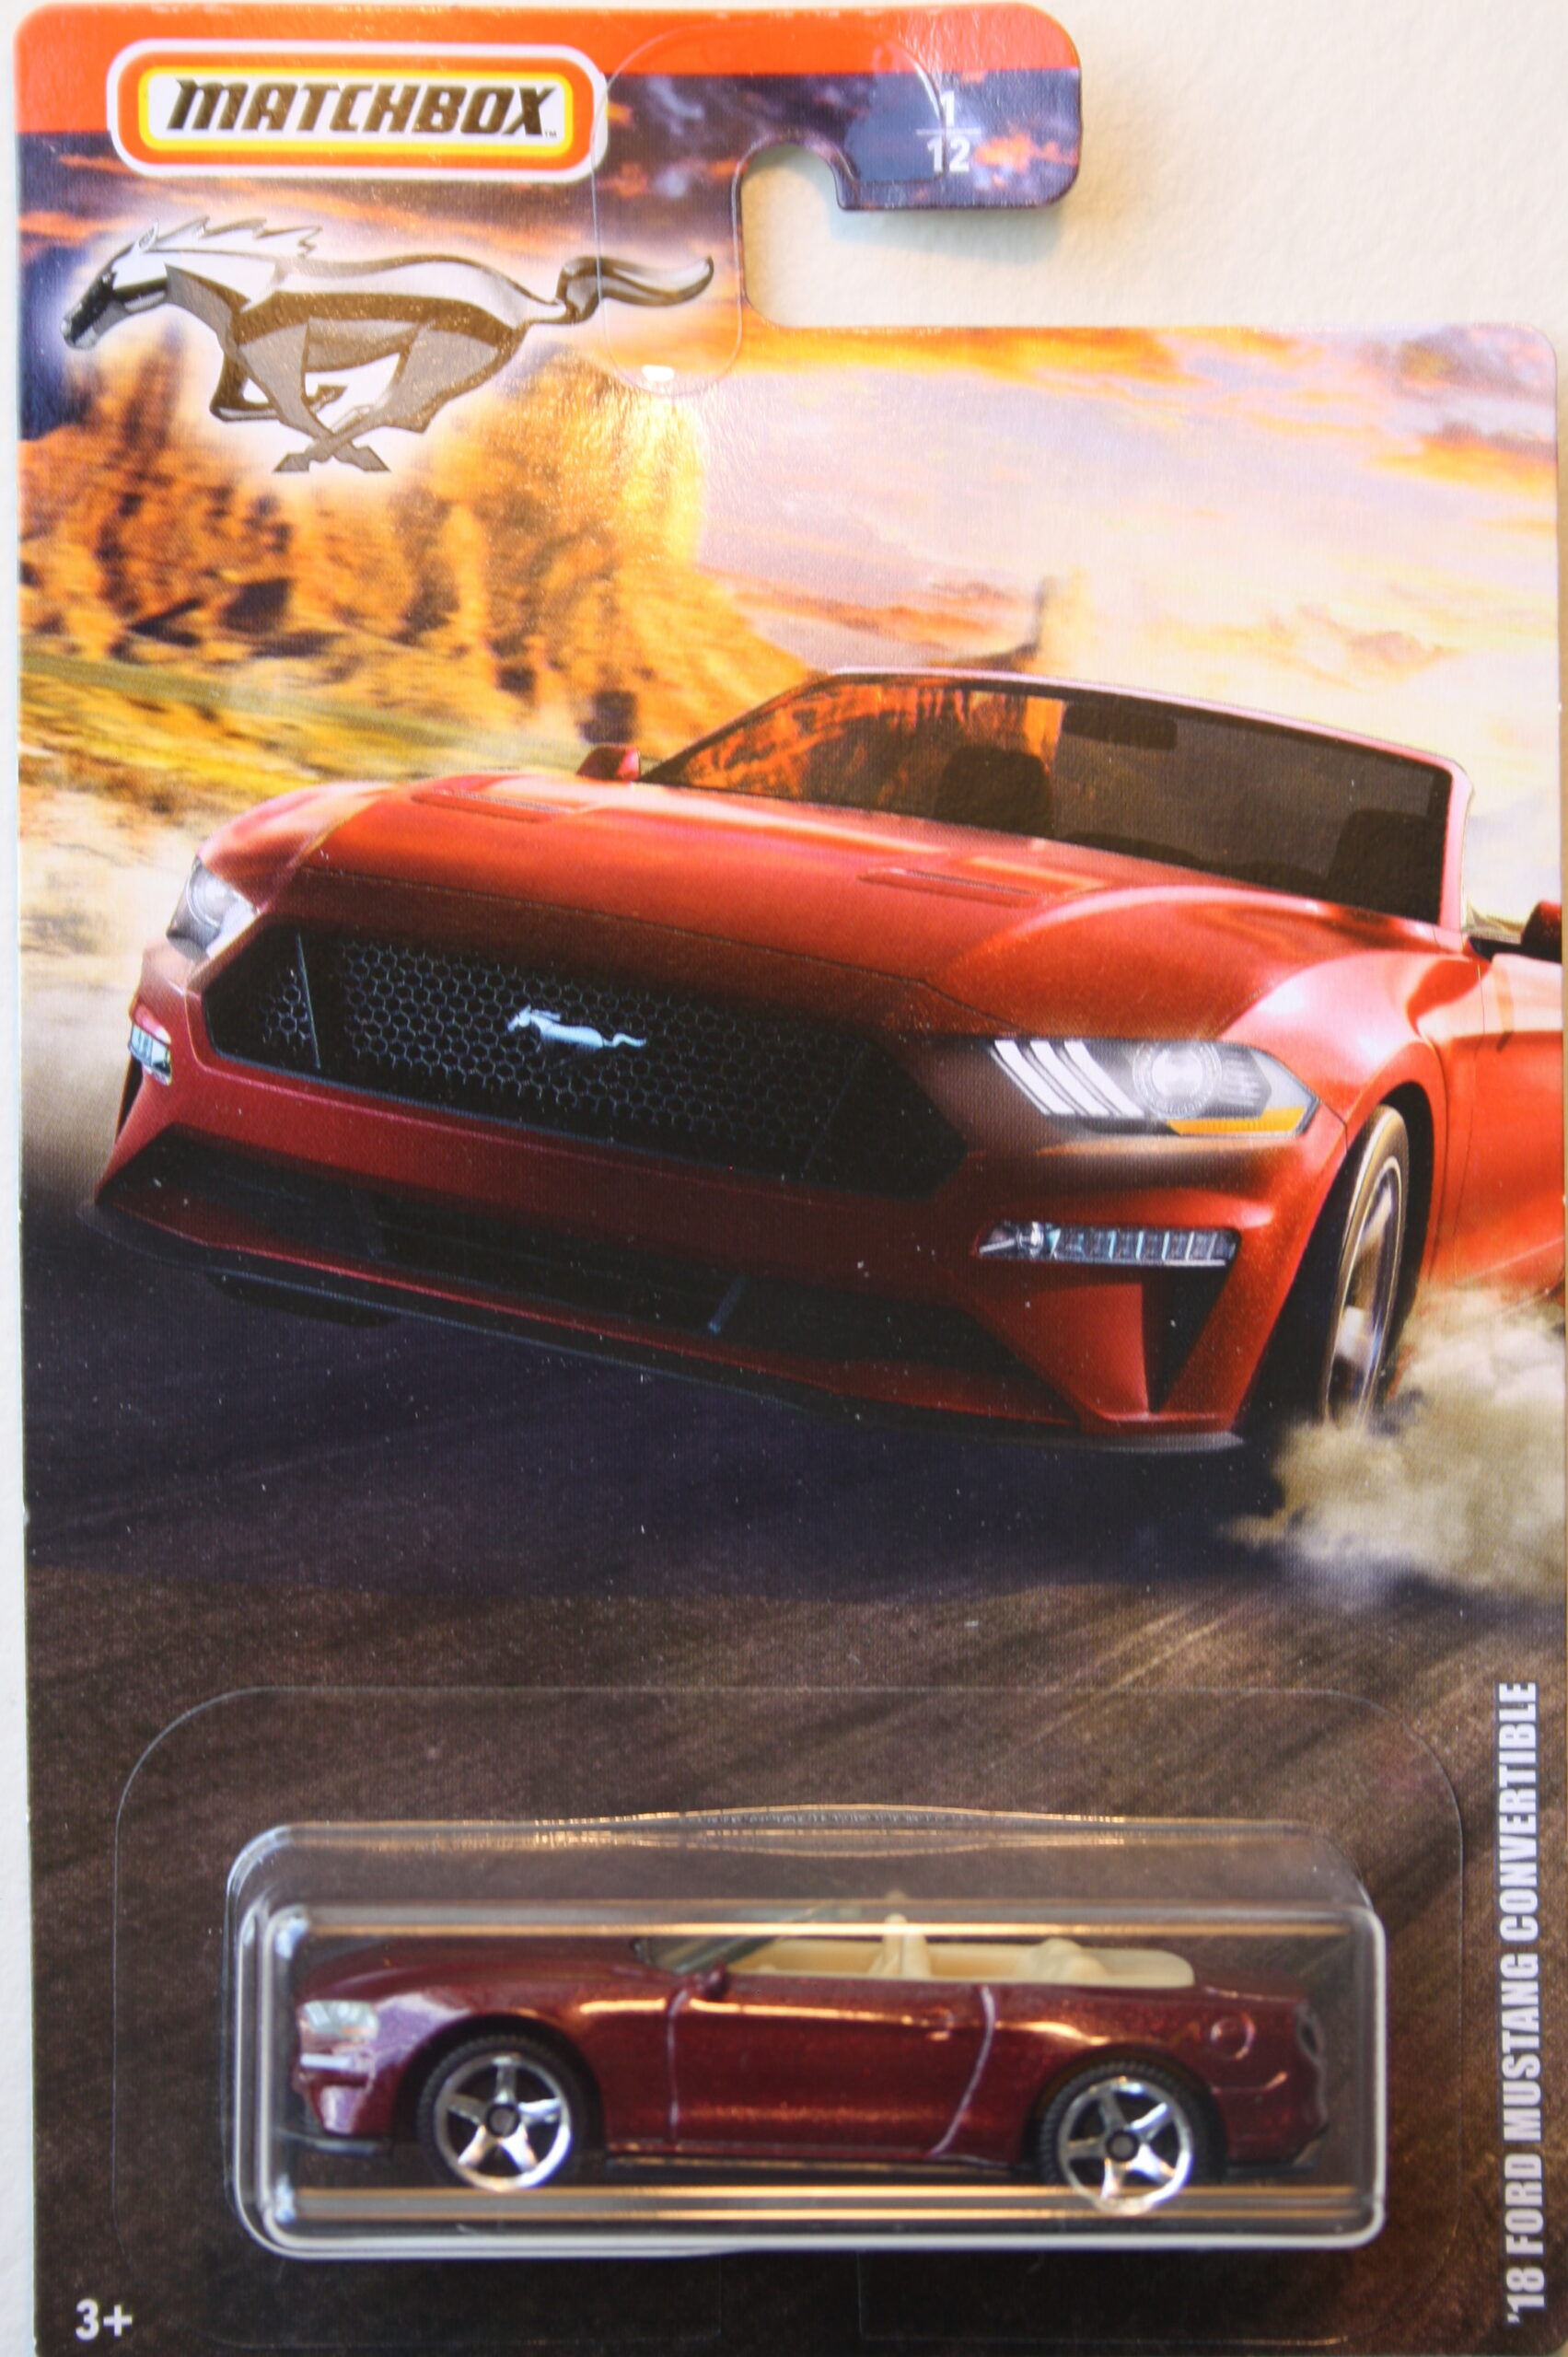 Matchbox 2018 Ford Mustang Covertible, brown